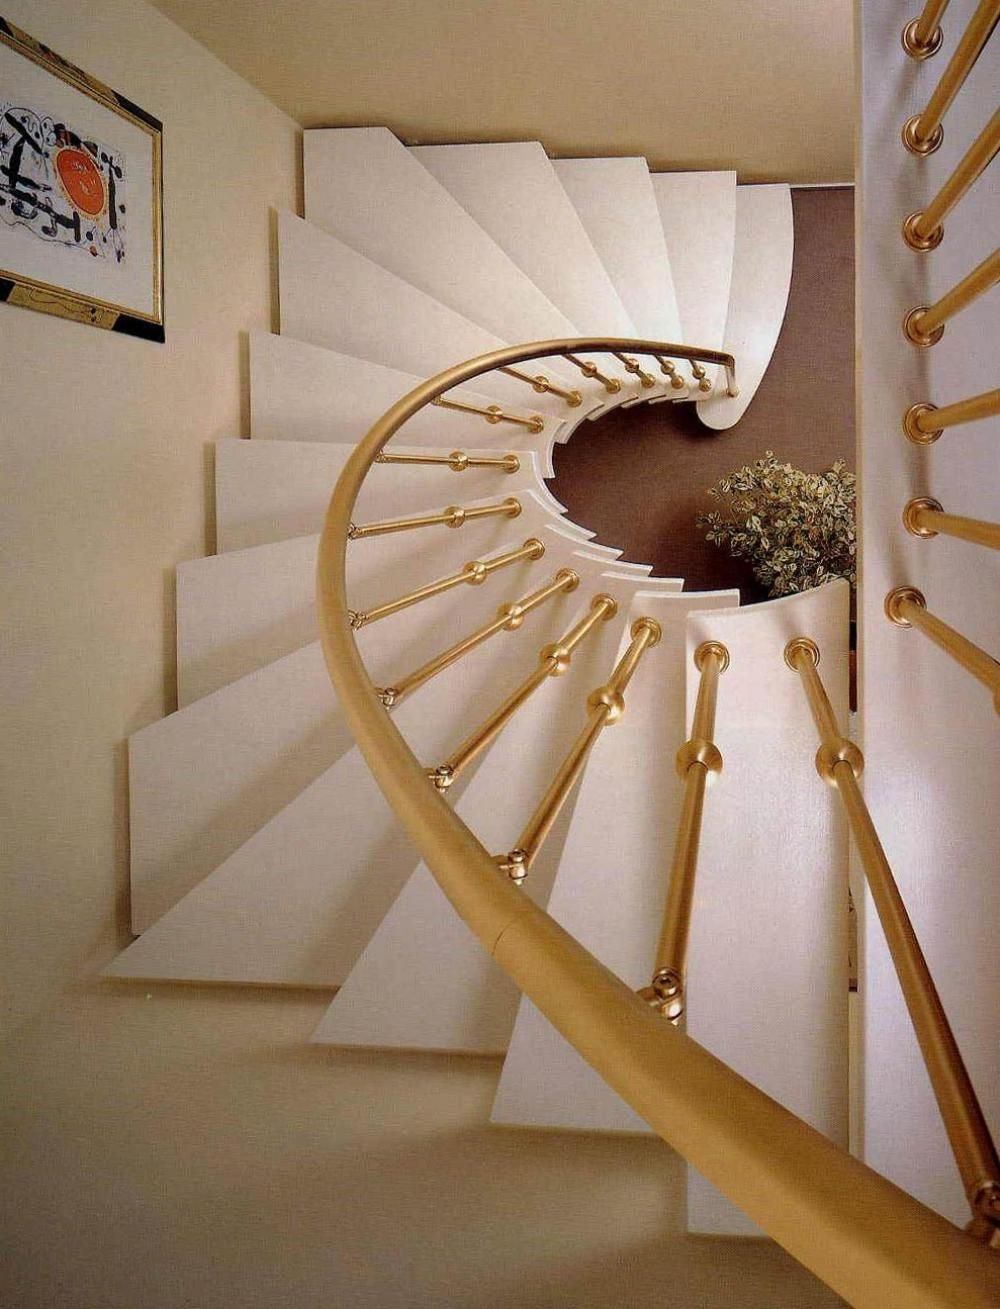 40 Breathtaking Spiral Staircases To Dream About Having In Your Home | Semi Spiral Staircase Design | Curved Staircase | Residential Library | Interior | Futuristic | Iron